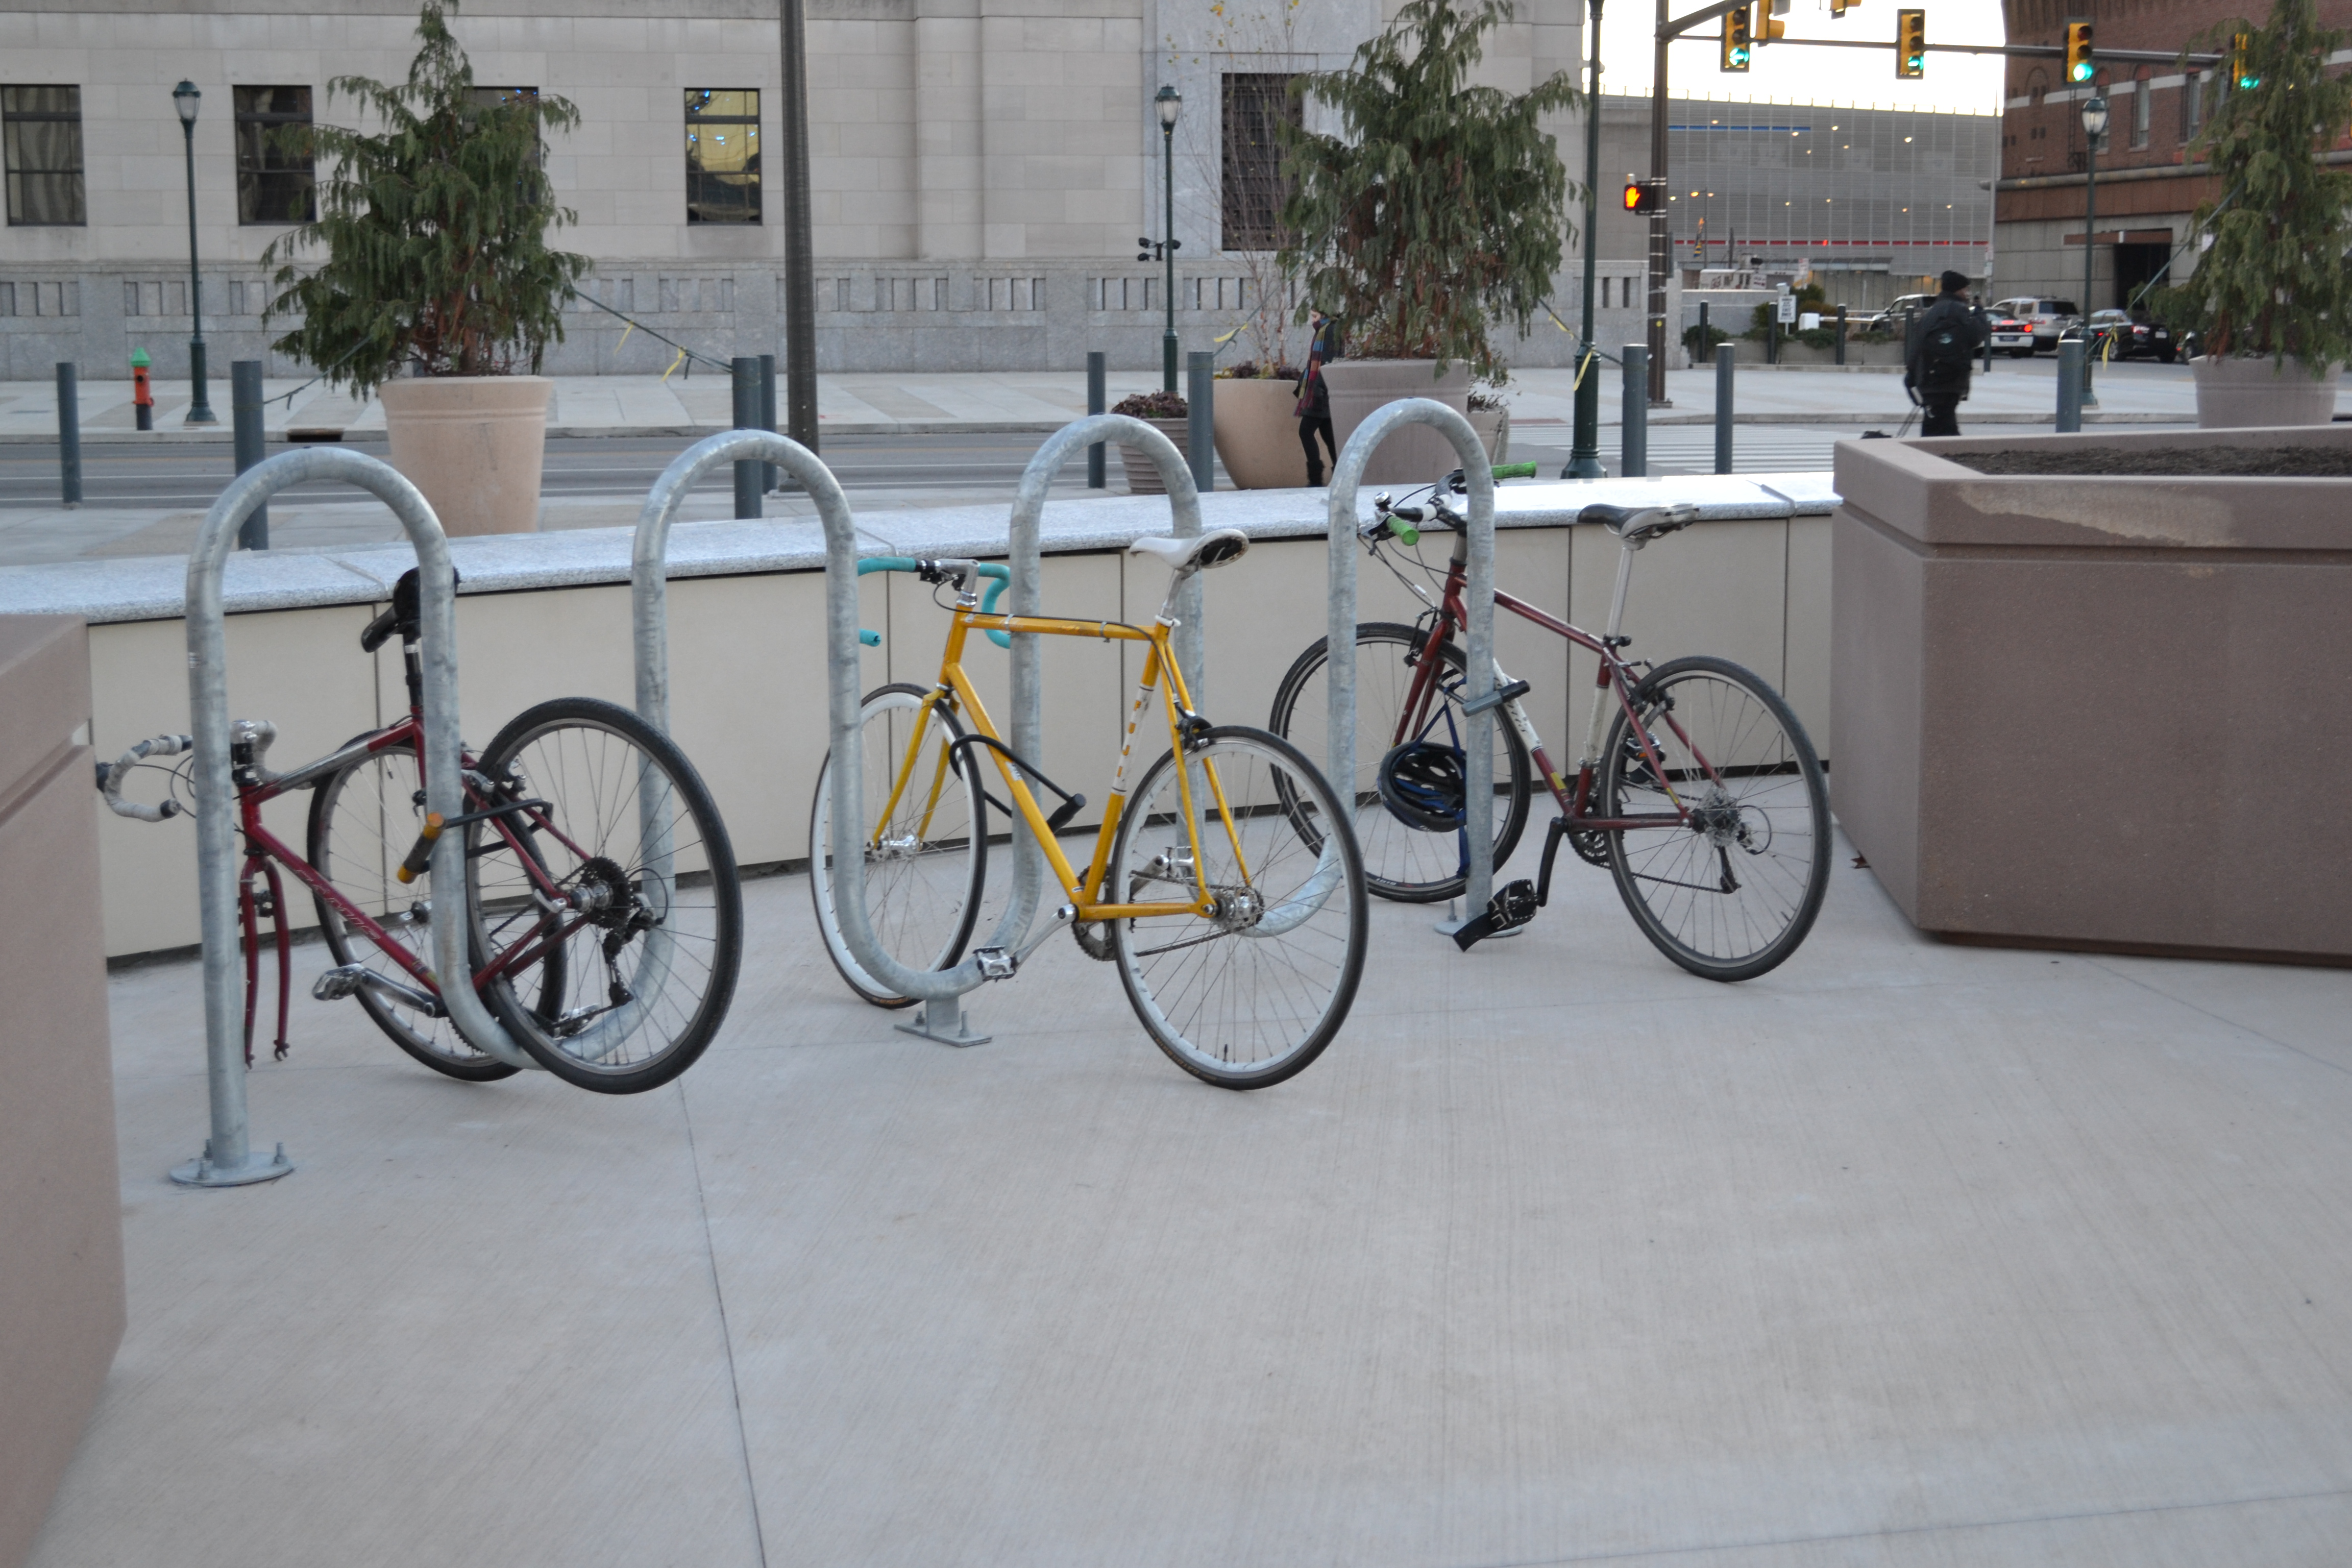 Amtrak installed nine new bike racks